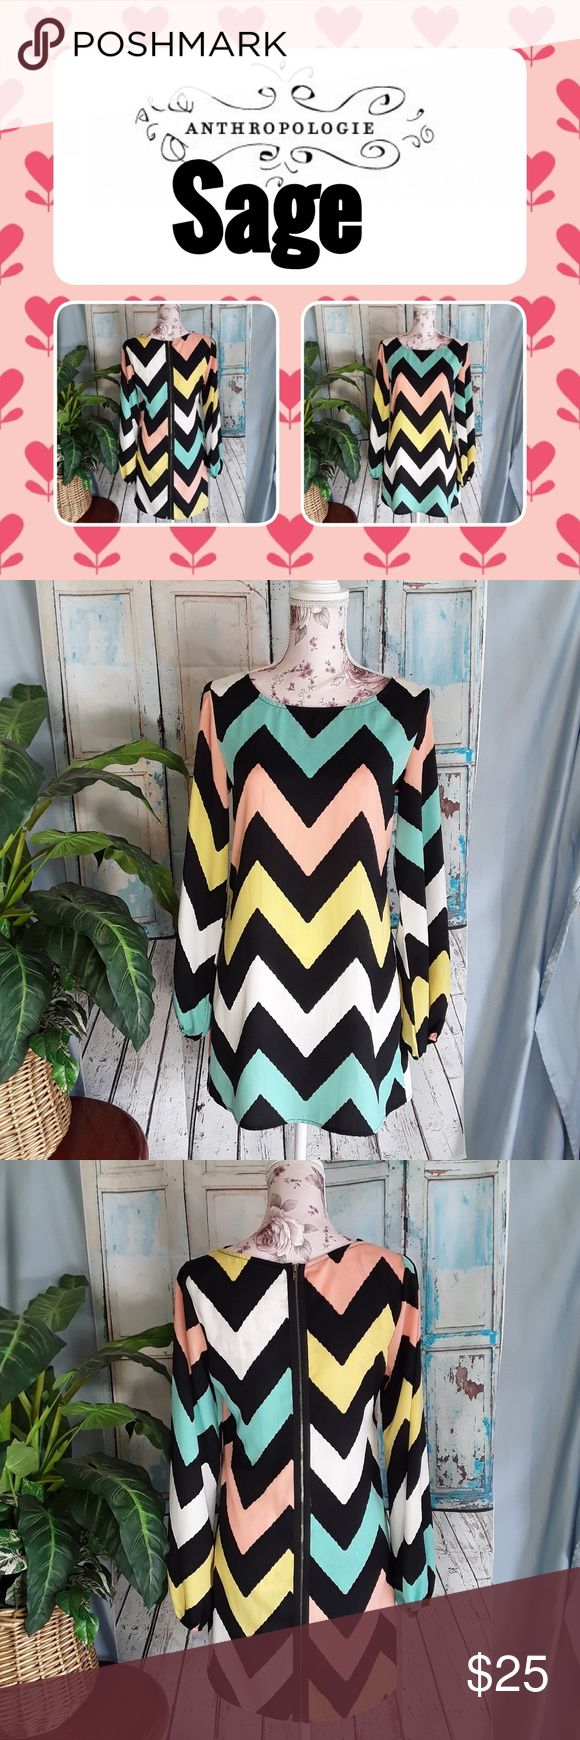 "Anthropology Sage Chevron Print Dress Anthropology Sage Chevron Print Sleeves Zippered Dress Womens Size Small  Chevron print. Back zipper.  3/4 sleeves.  Loose fitting.  Measurements:  Chest: 36"" Length: 31"" Excellent condition with no flaws. Please look at all pictures for condition. Anthropology Dresses Midi"